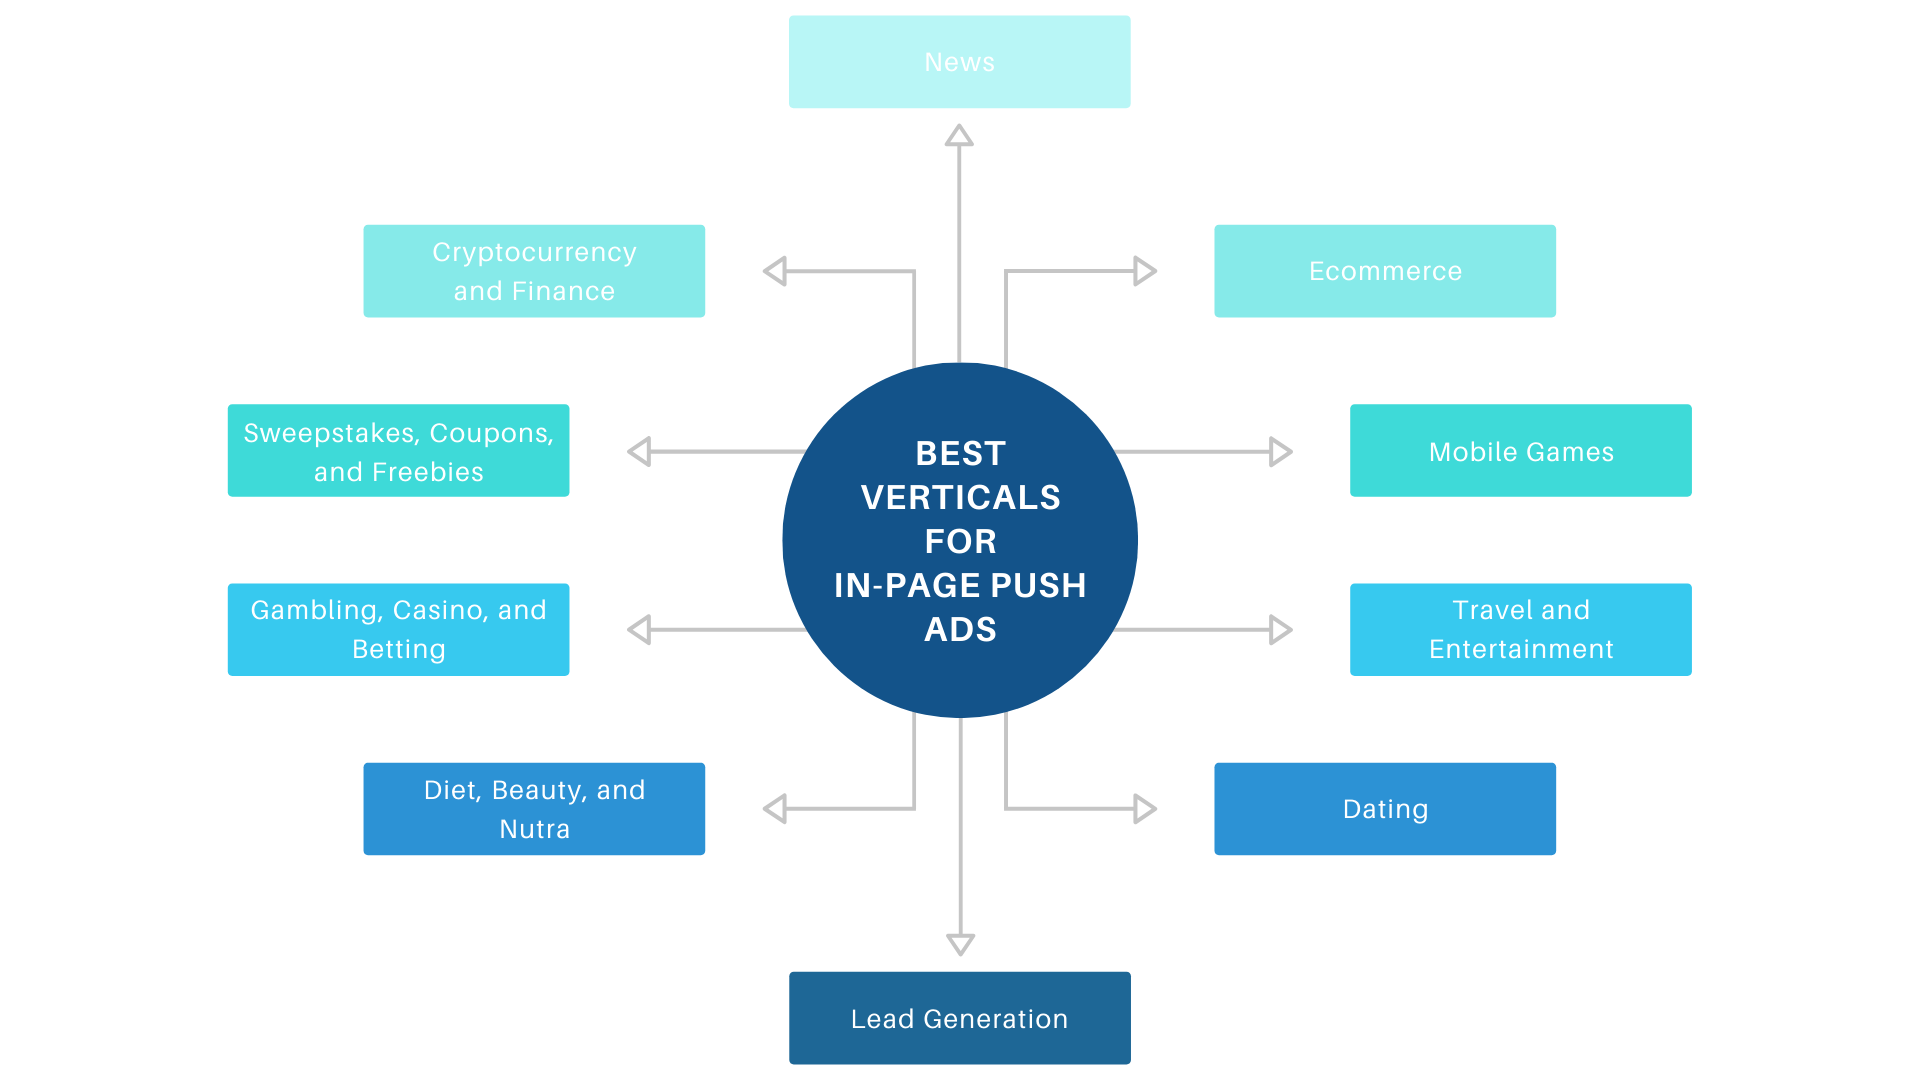 Best verticals and niches for in-page push ads